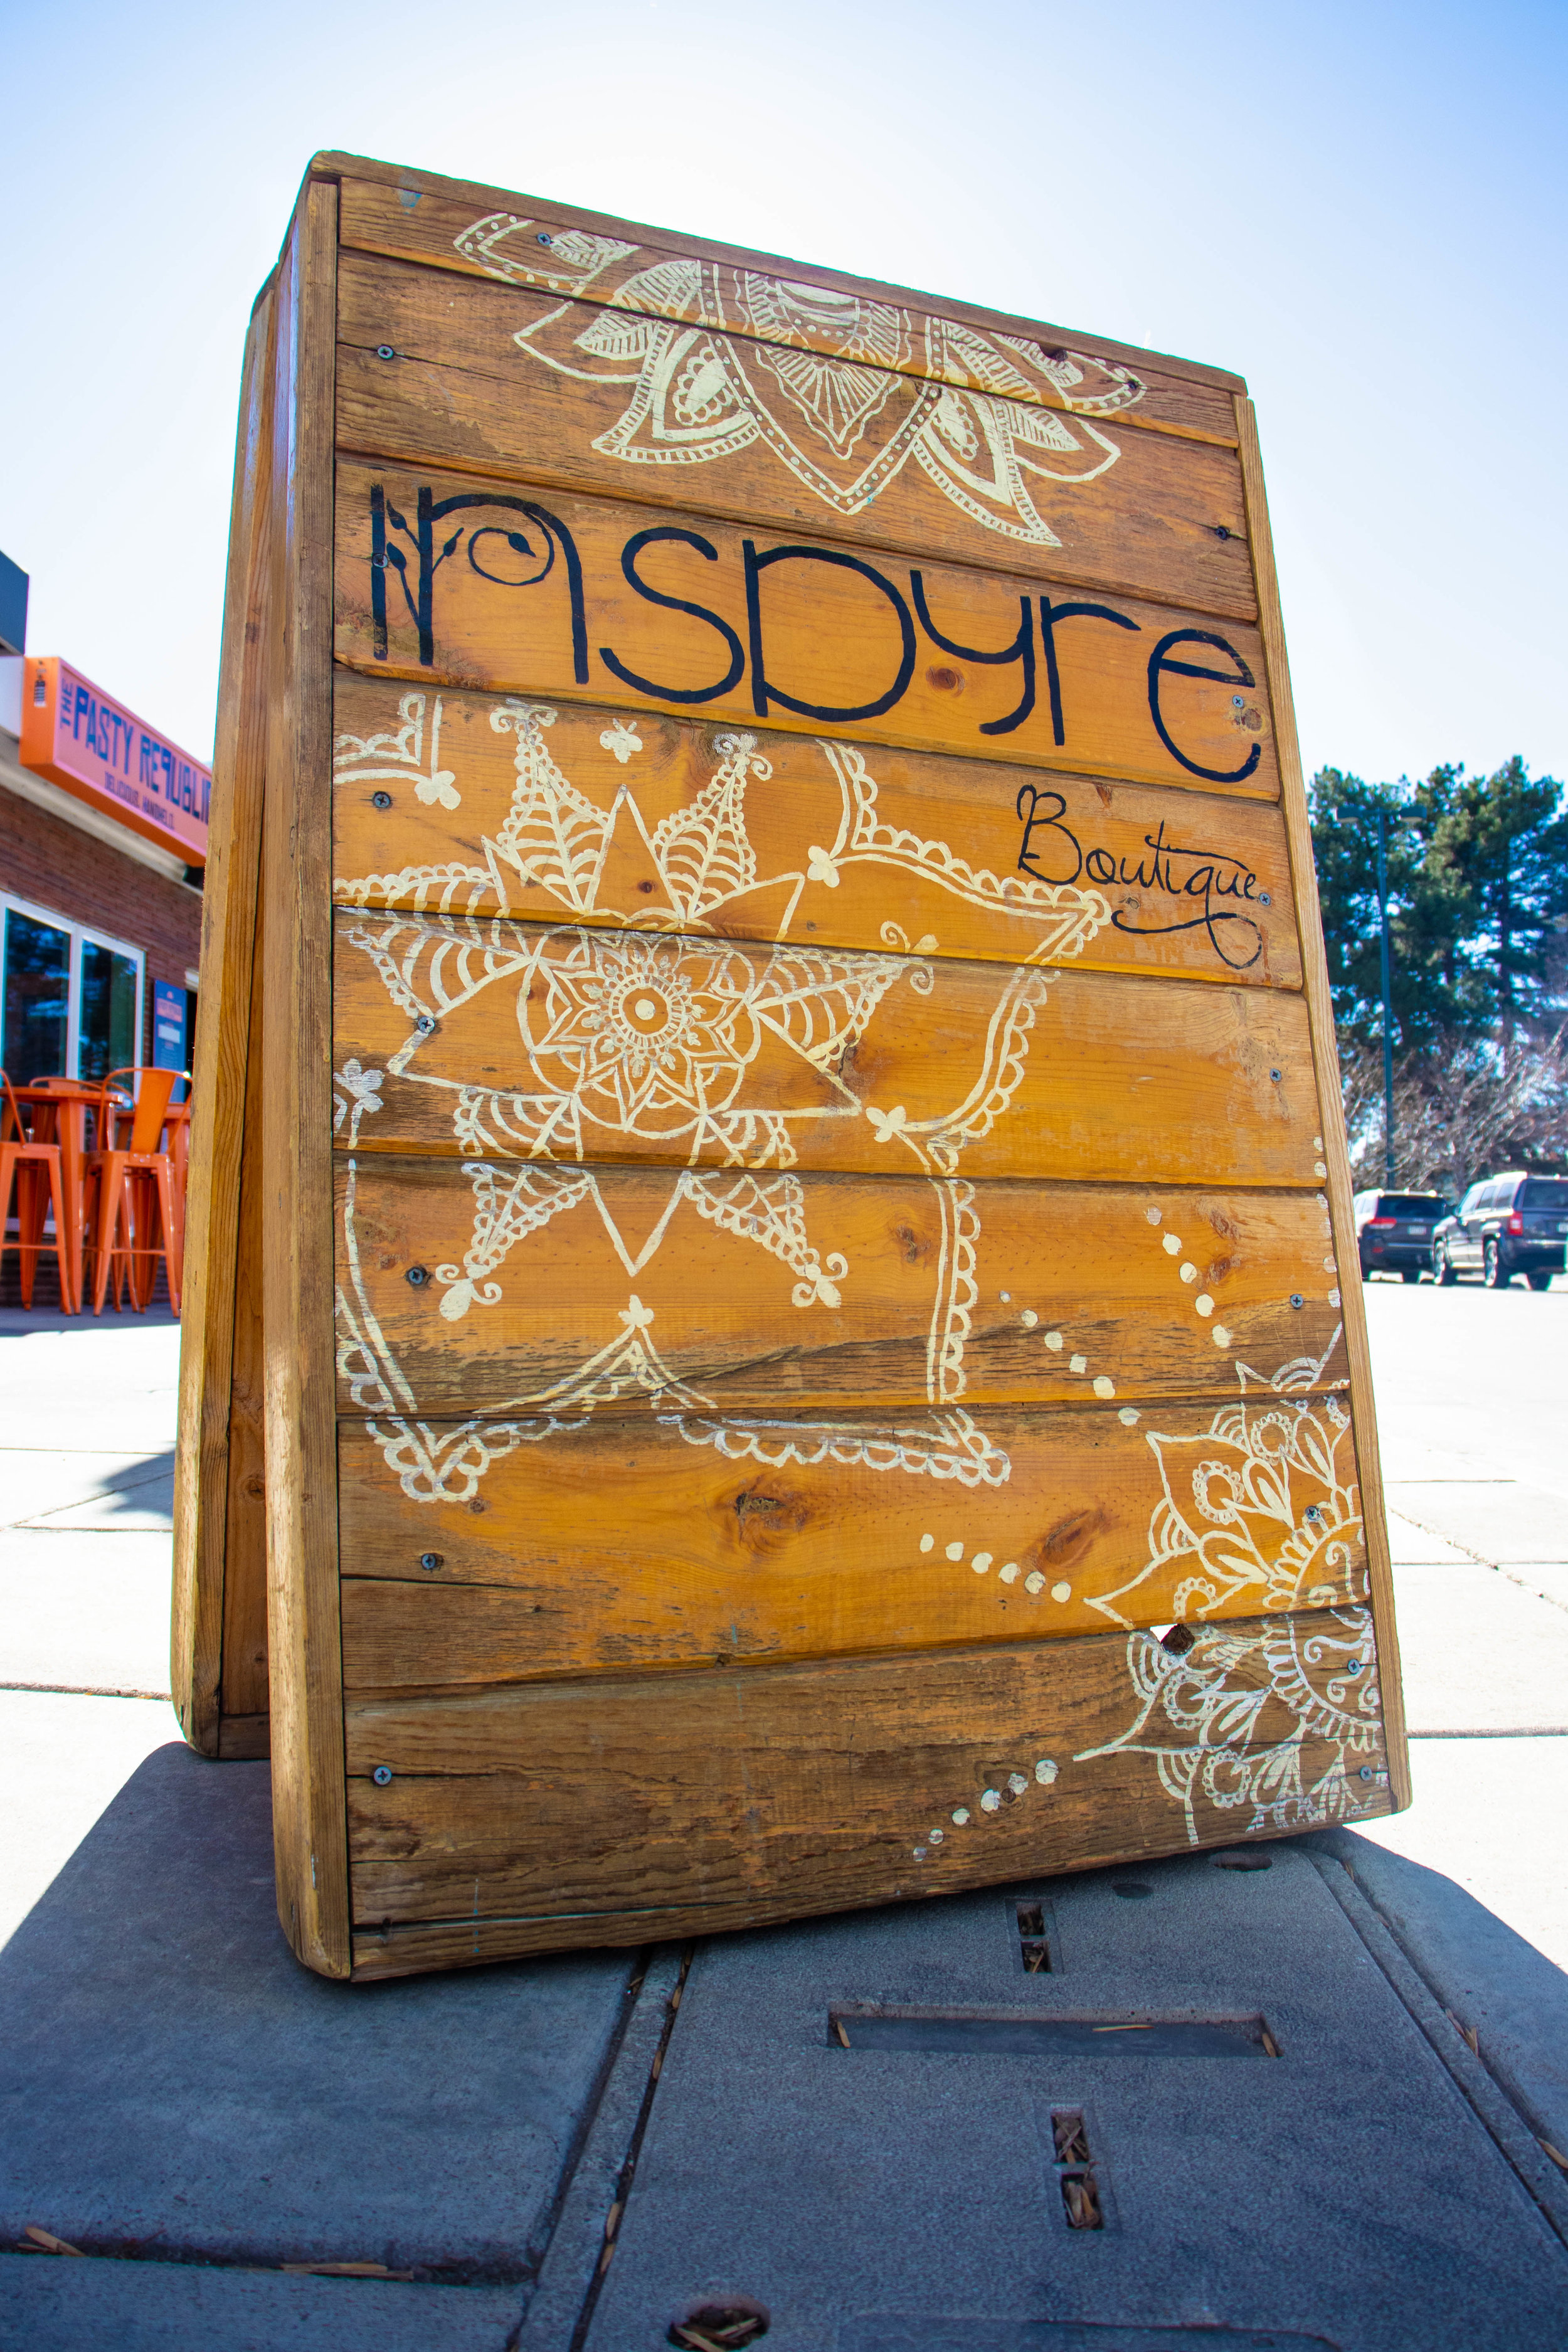 Inspyre Boutique